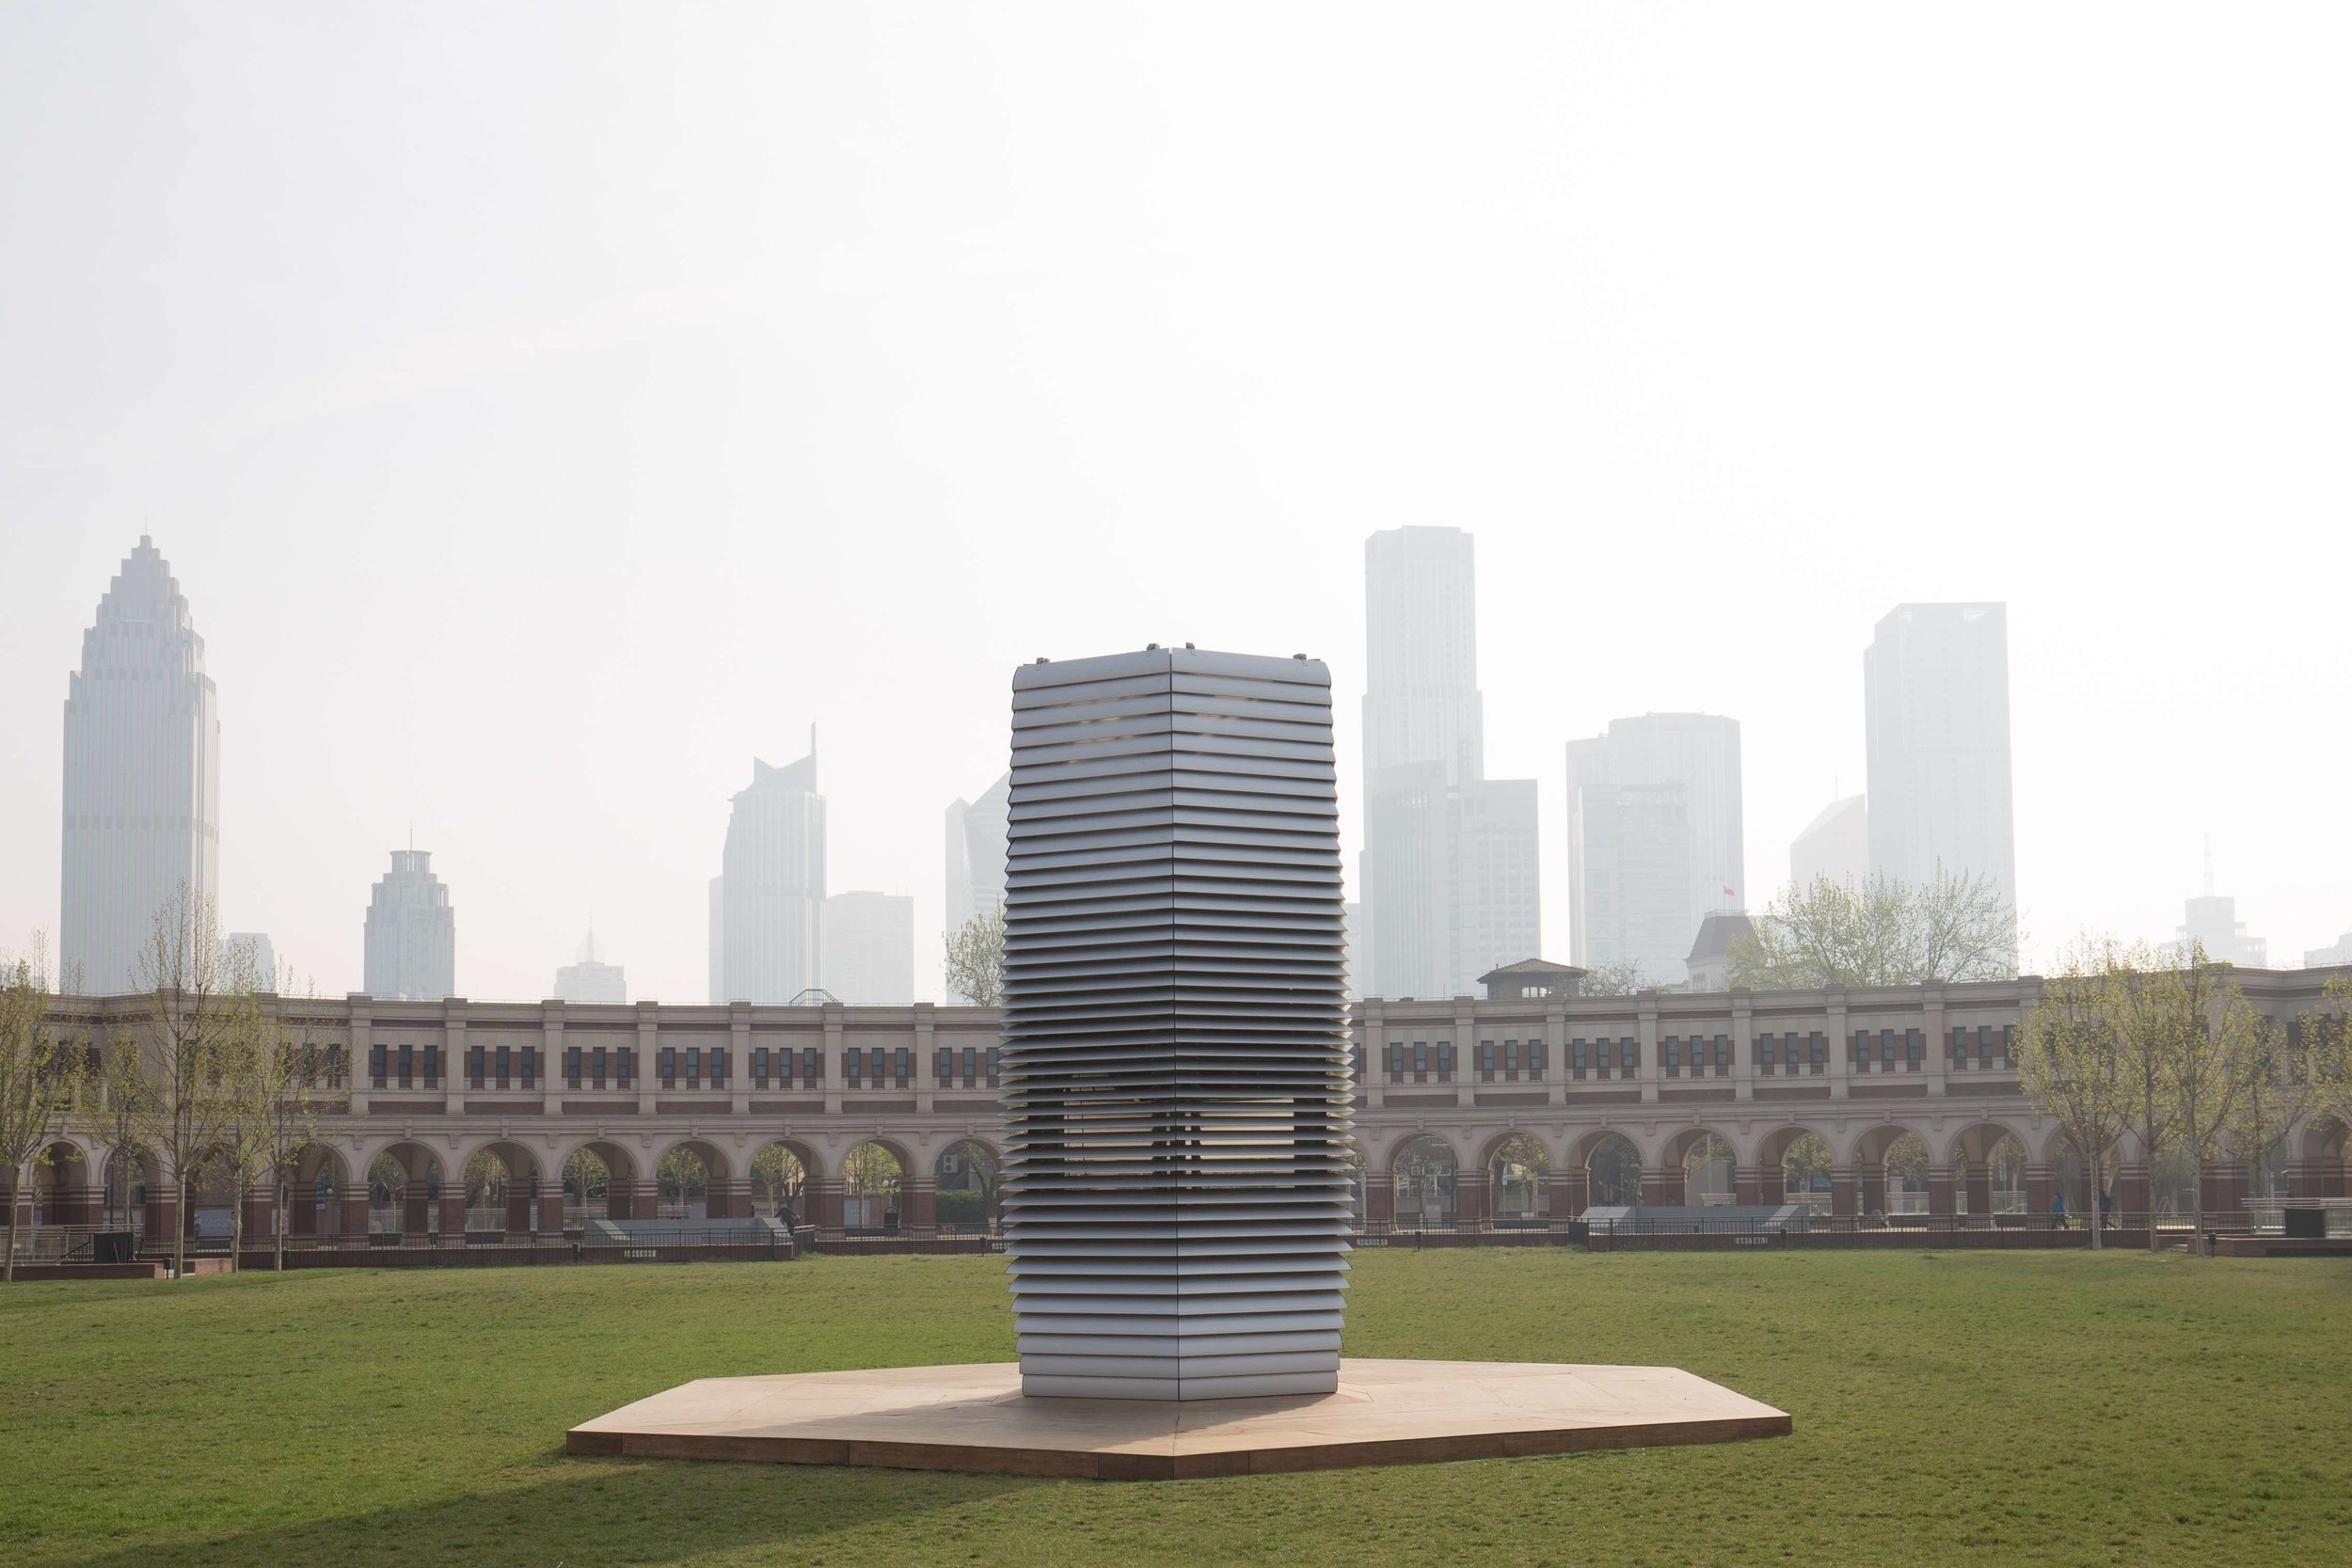 Studio Roosegarde's Smog Free Project turns air pollution into diamonds. Photograph by Hasy